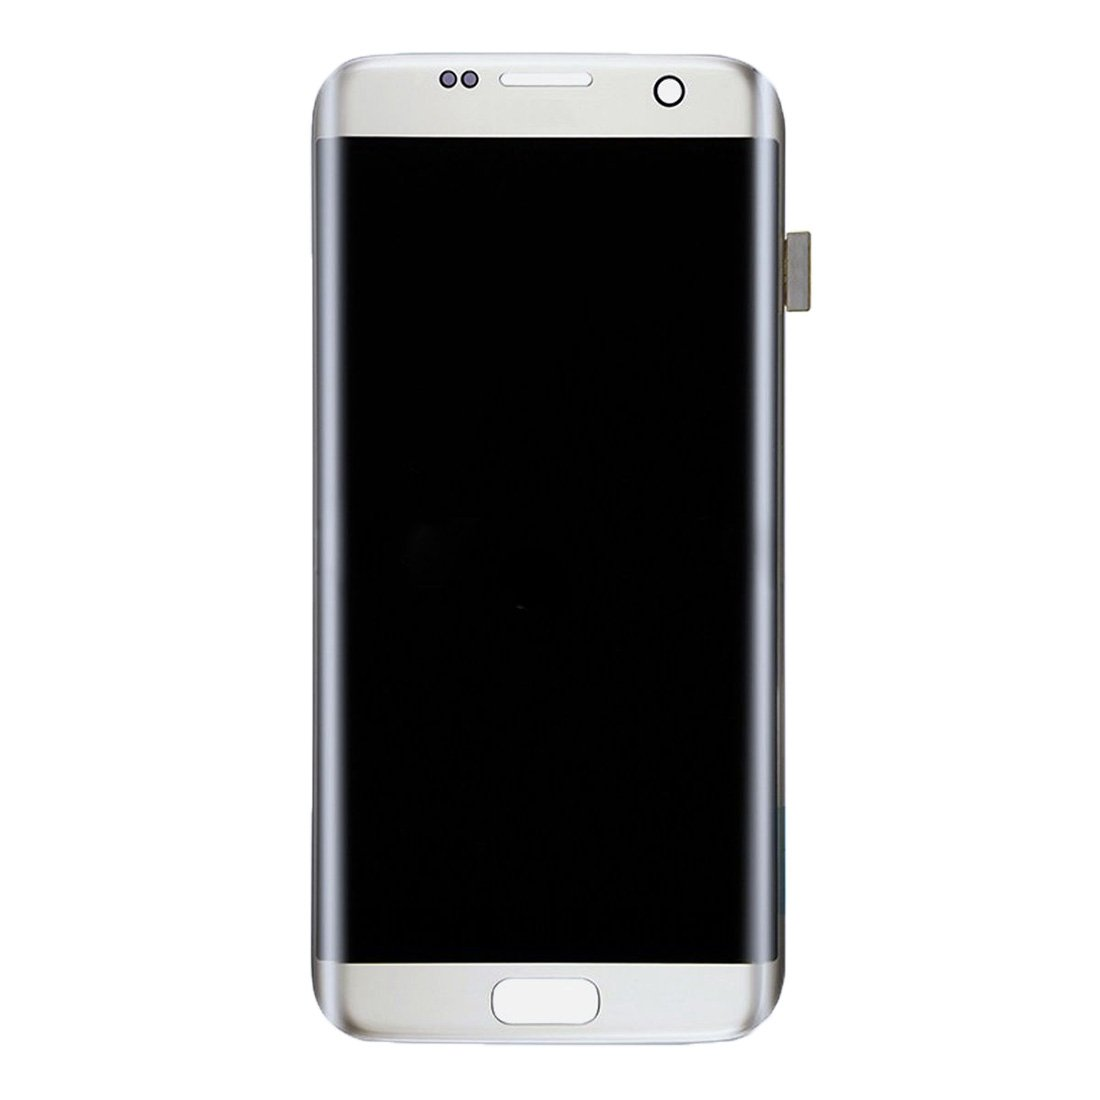 WANGYING Wangying New LCD Display + Touch Panel for Galaxy S7 Edge / G9350 / G935F / G935A / G935V, G935FD, G935W8, G935T, G935U(Silver) (Color : Silver)